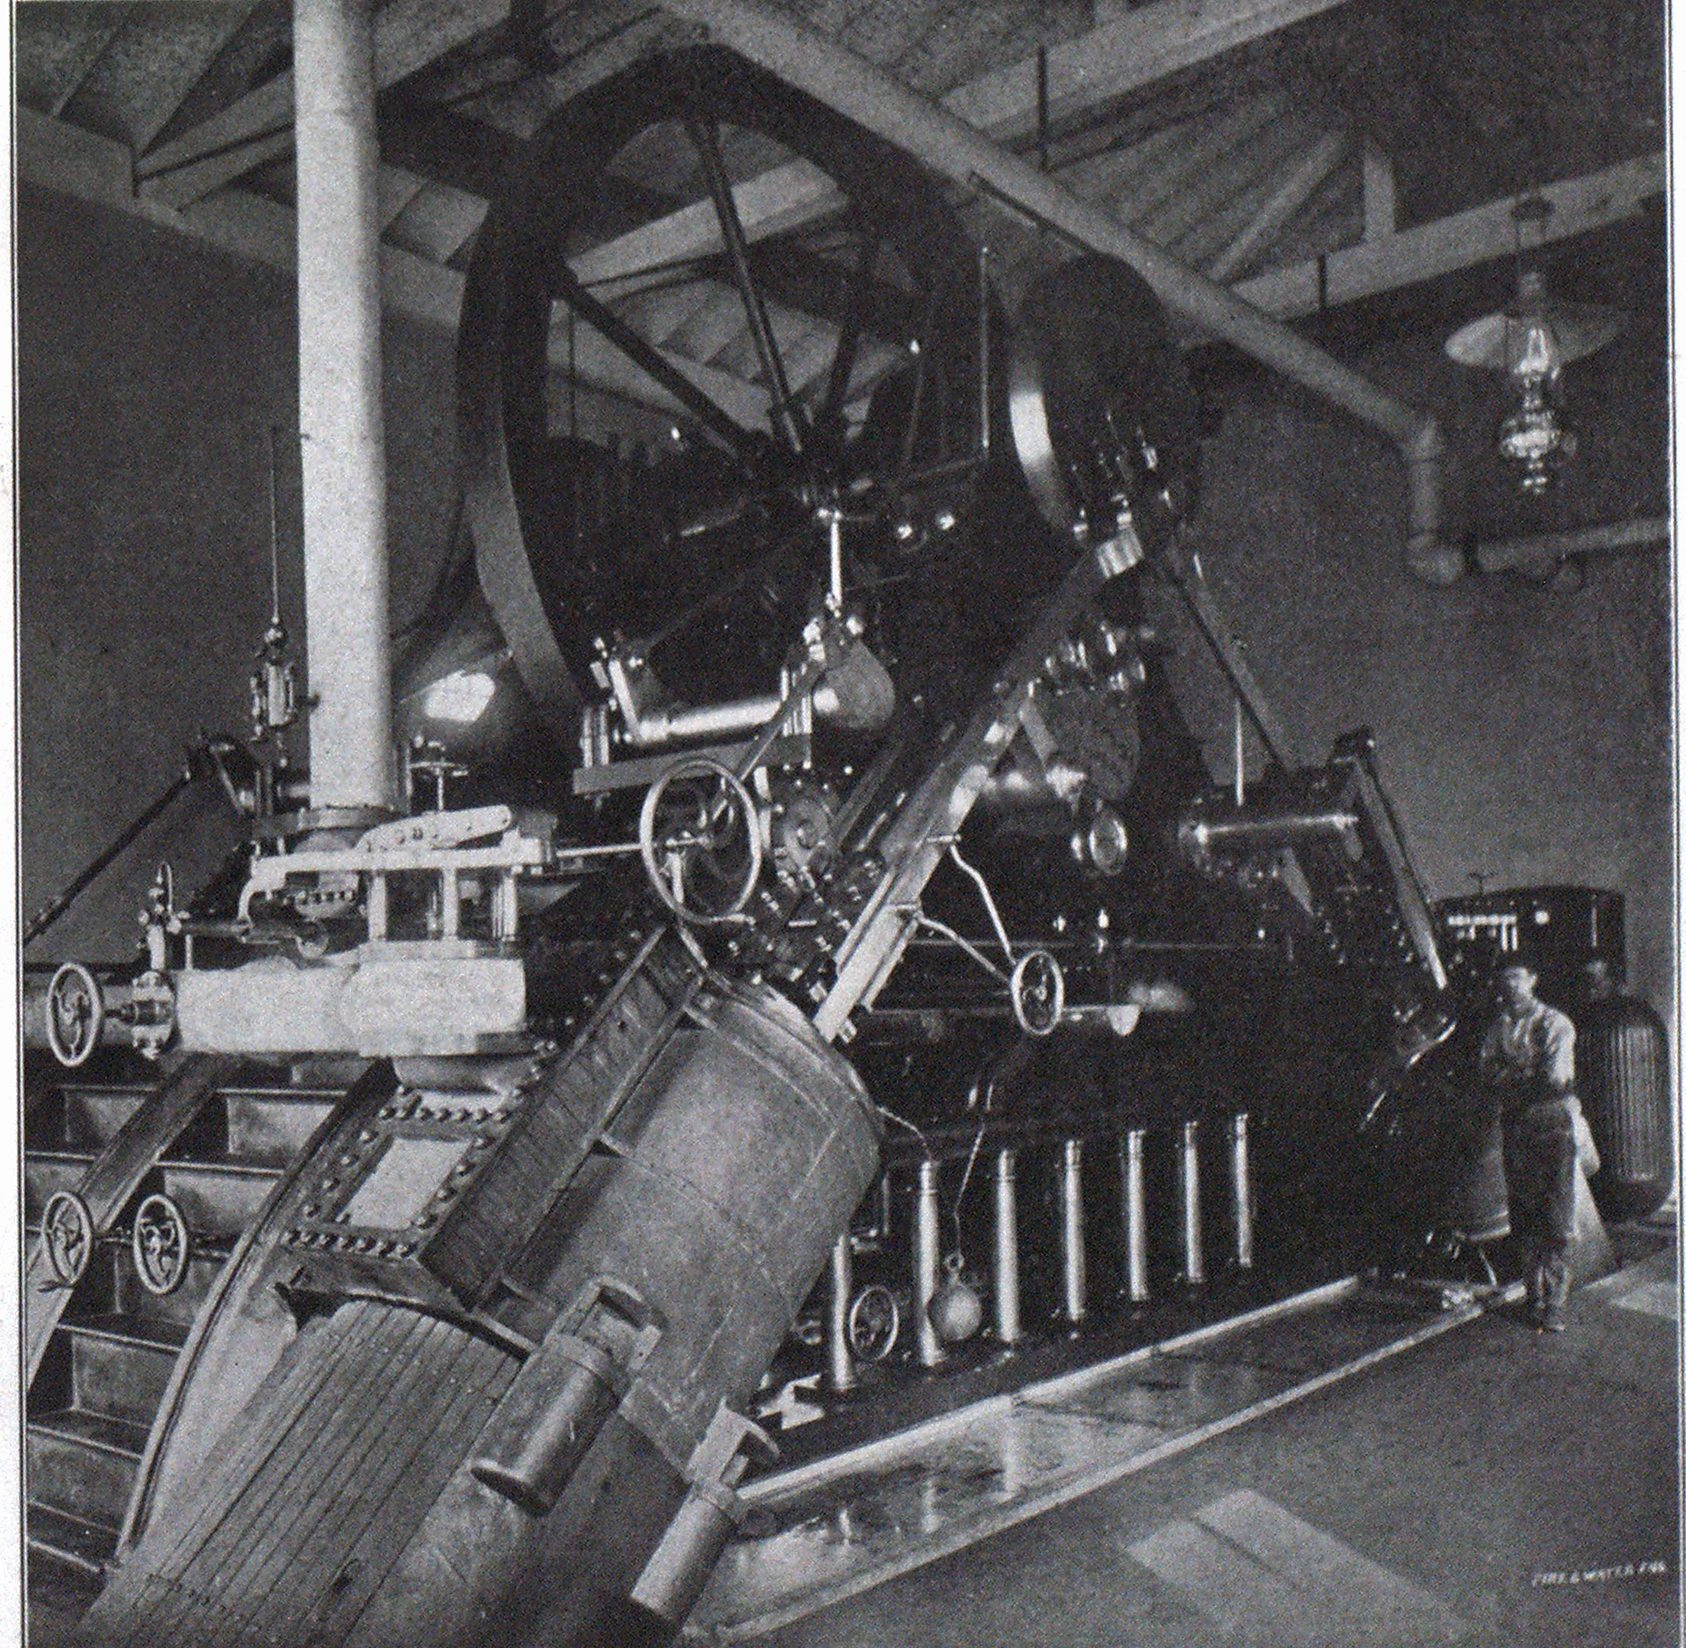 FOUR MILLION-GALLON HOLLY PUMPING ENGINE, INDEPENDENCE, MO.